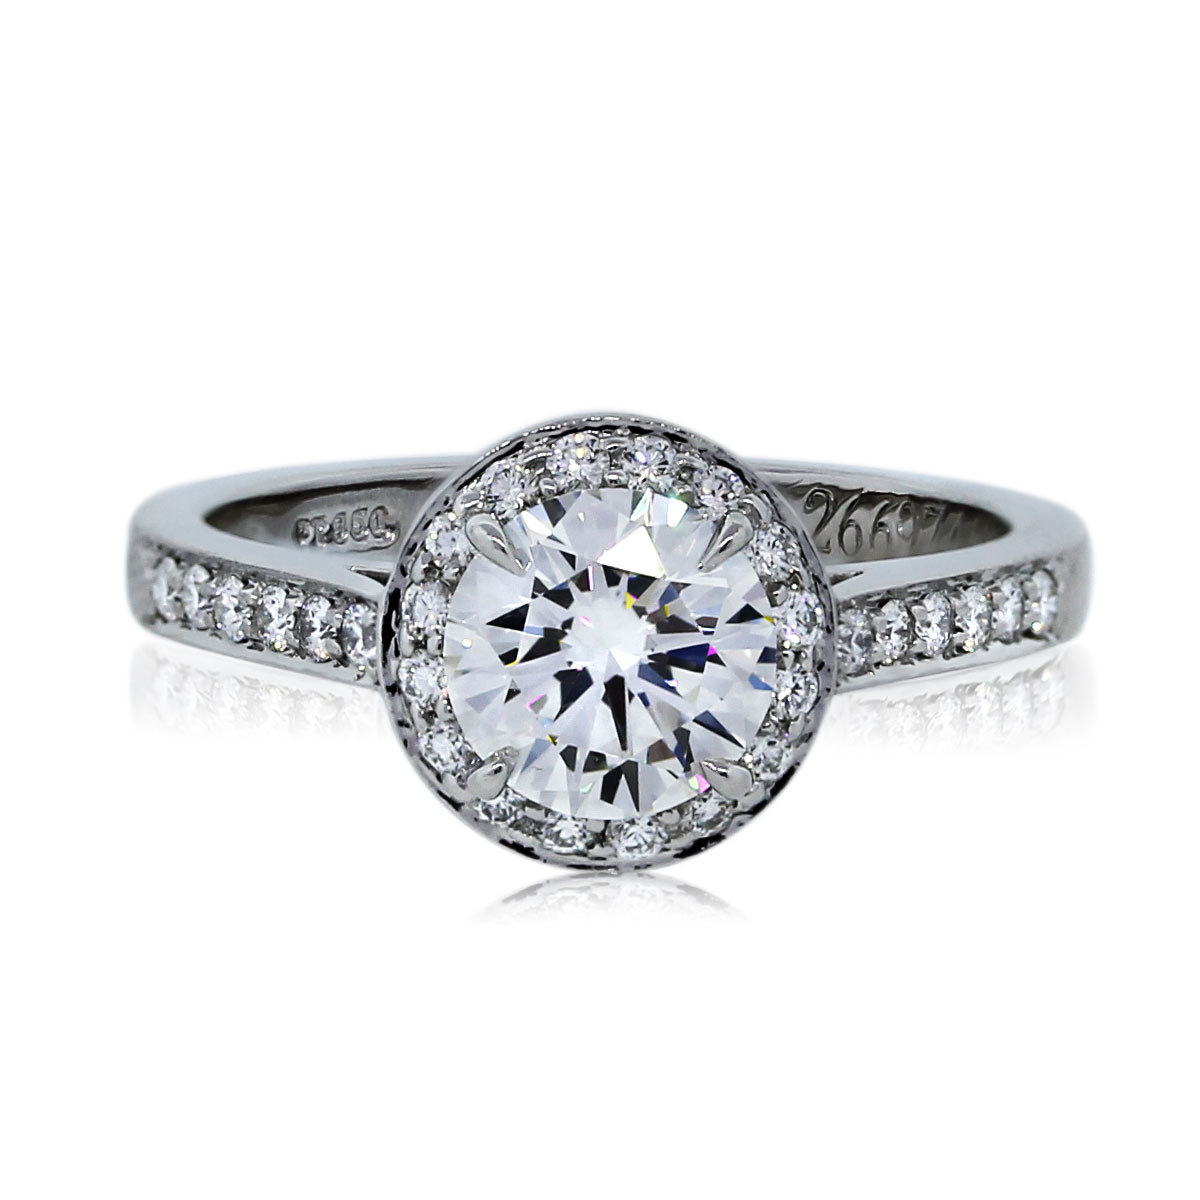 Tiffany co platinum 101ct round brilliant halo for Halo engagement rings with wedding bands